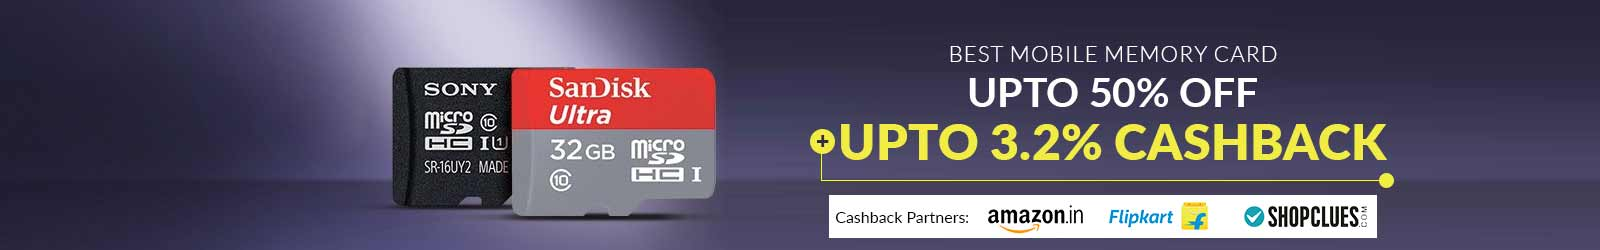 Mobile Memory Card Price Upto 50 Off Offers Upto 3 2 Cashback